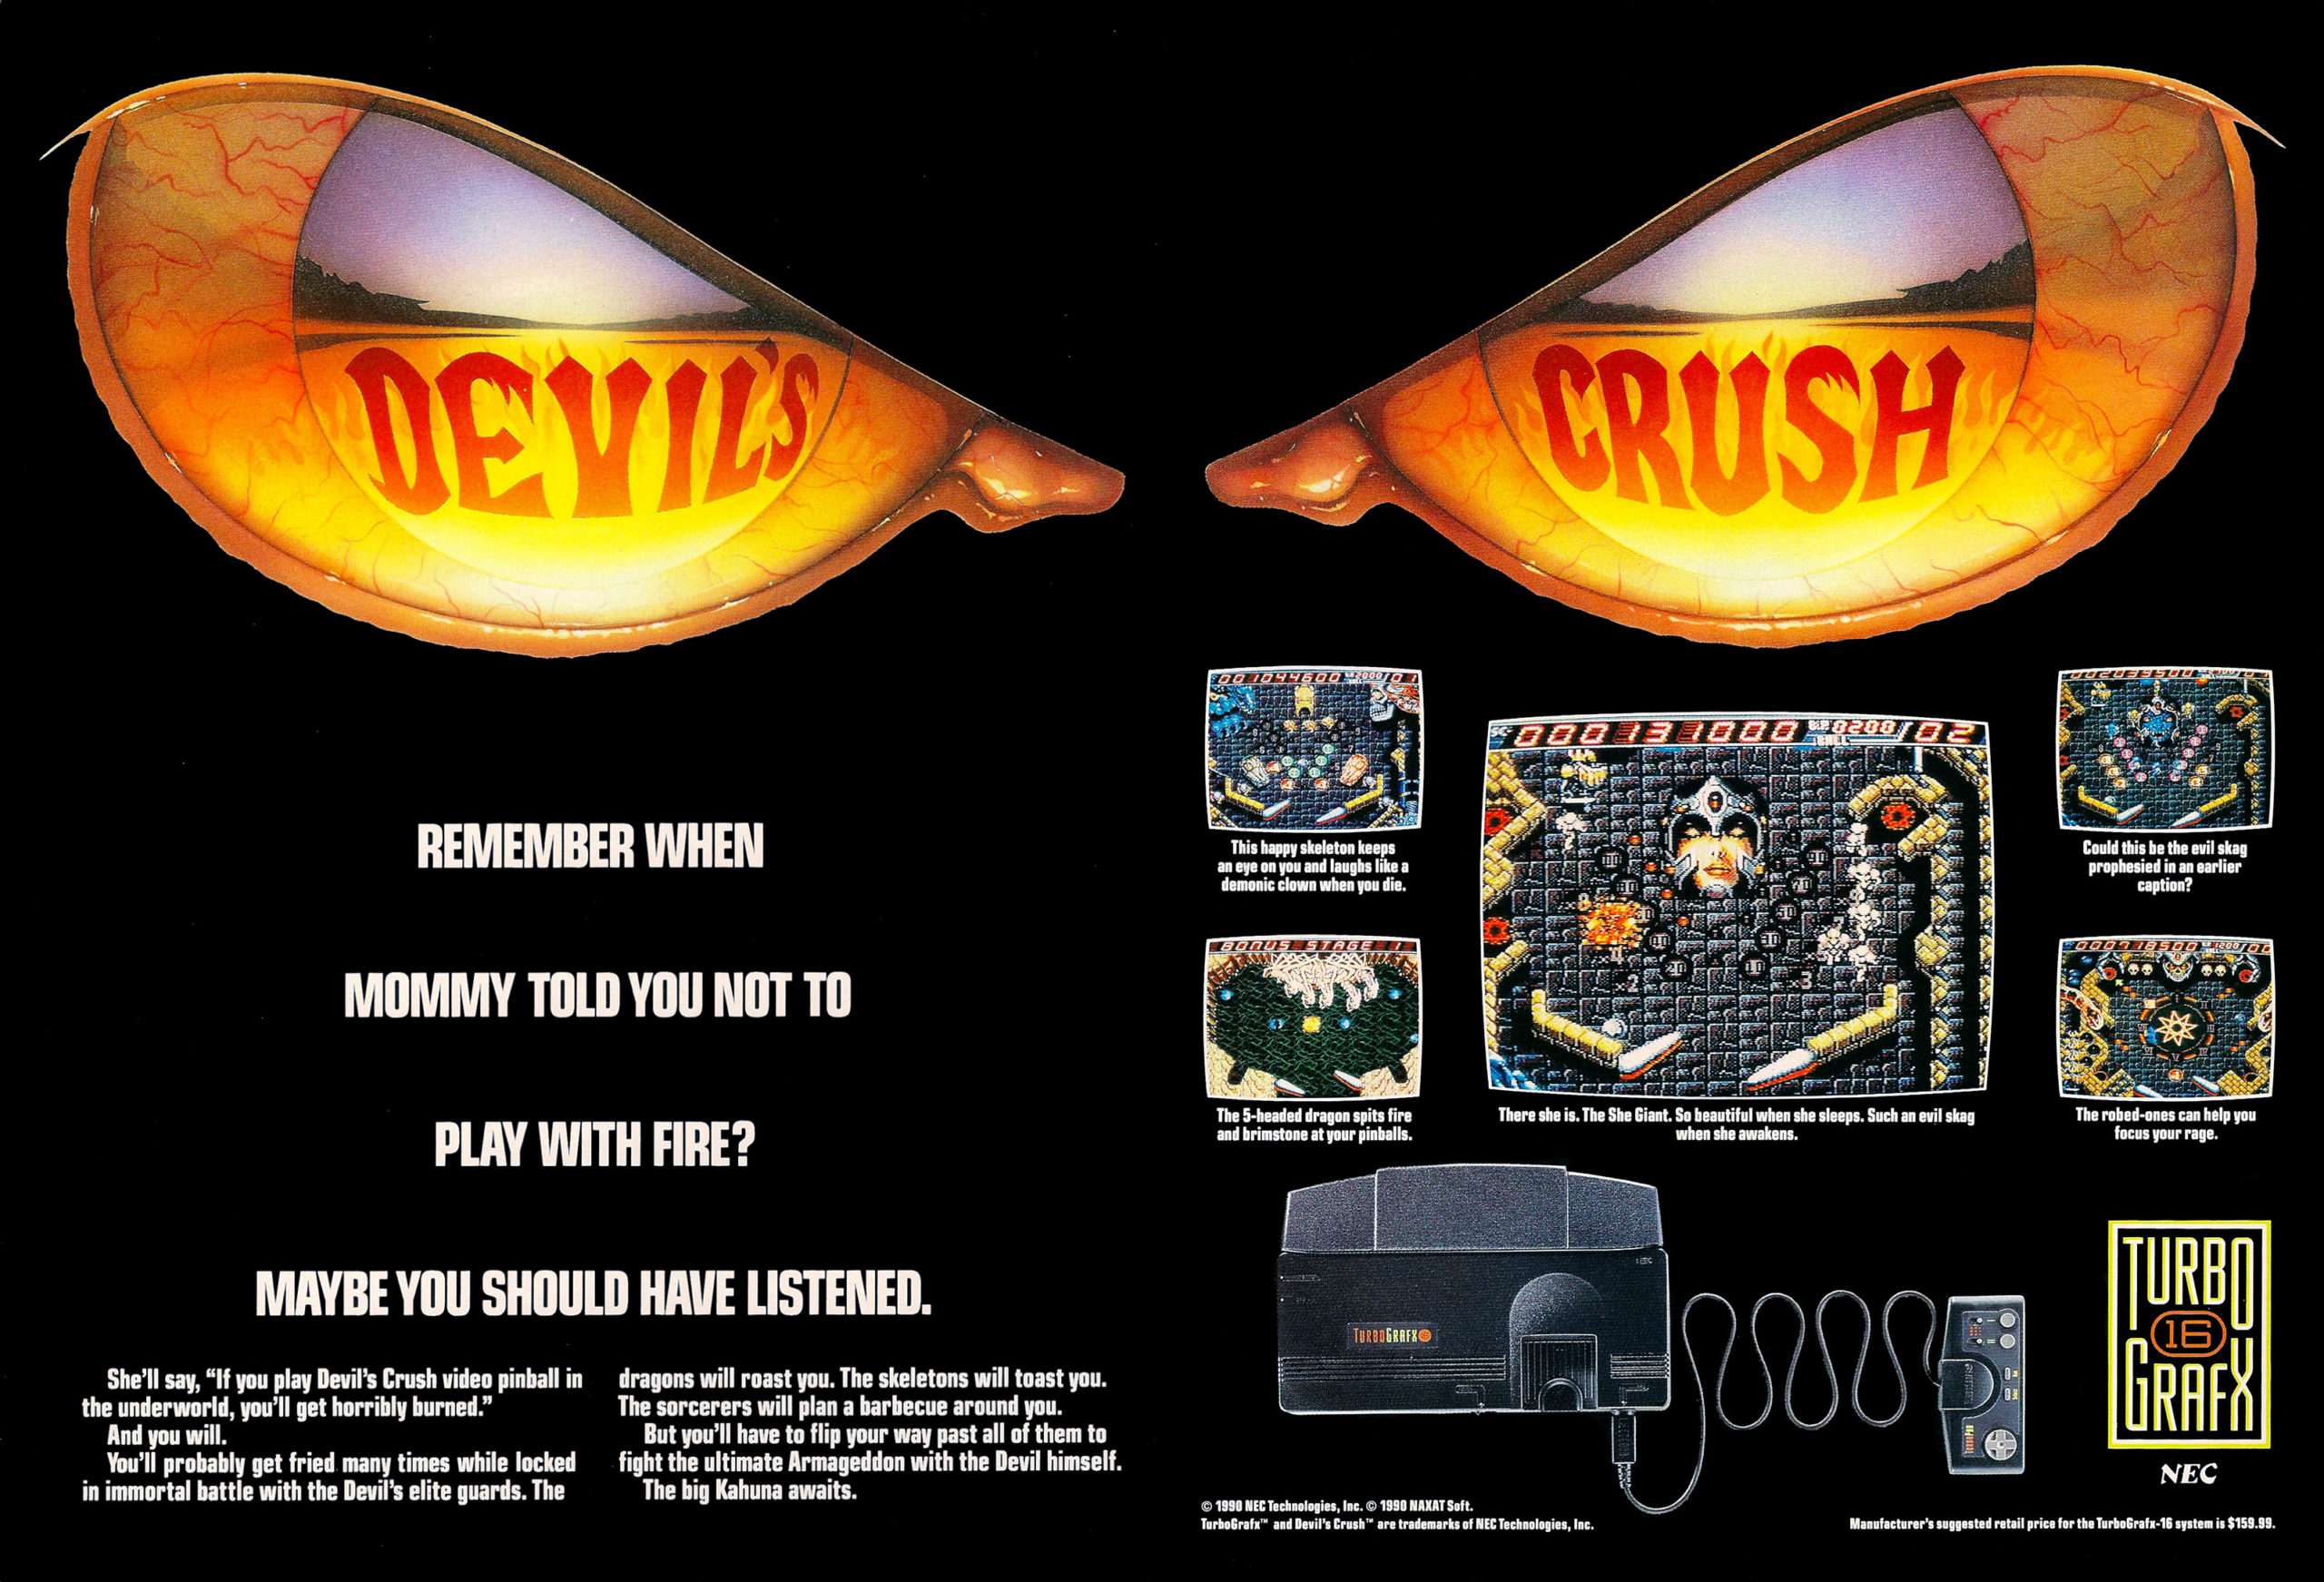 Devil's Crush Advertisement